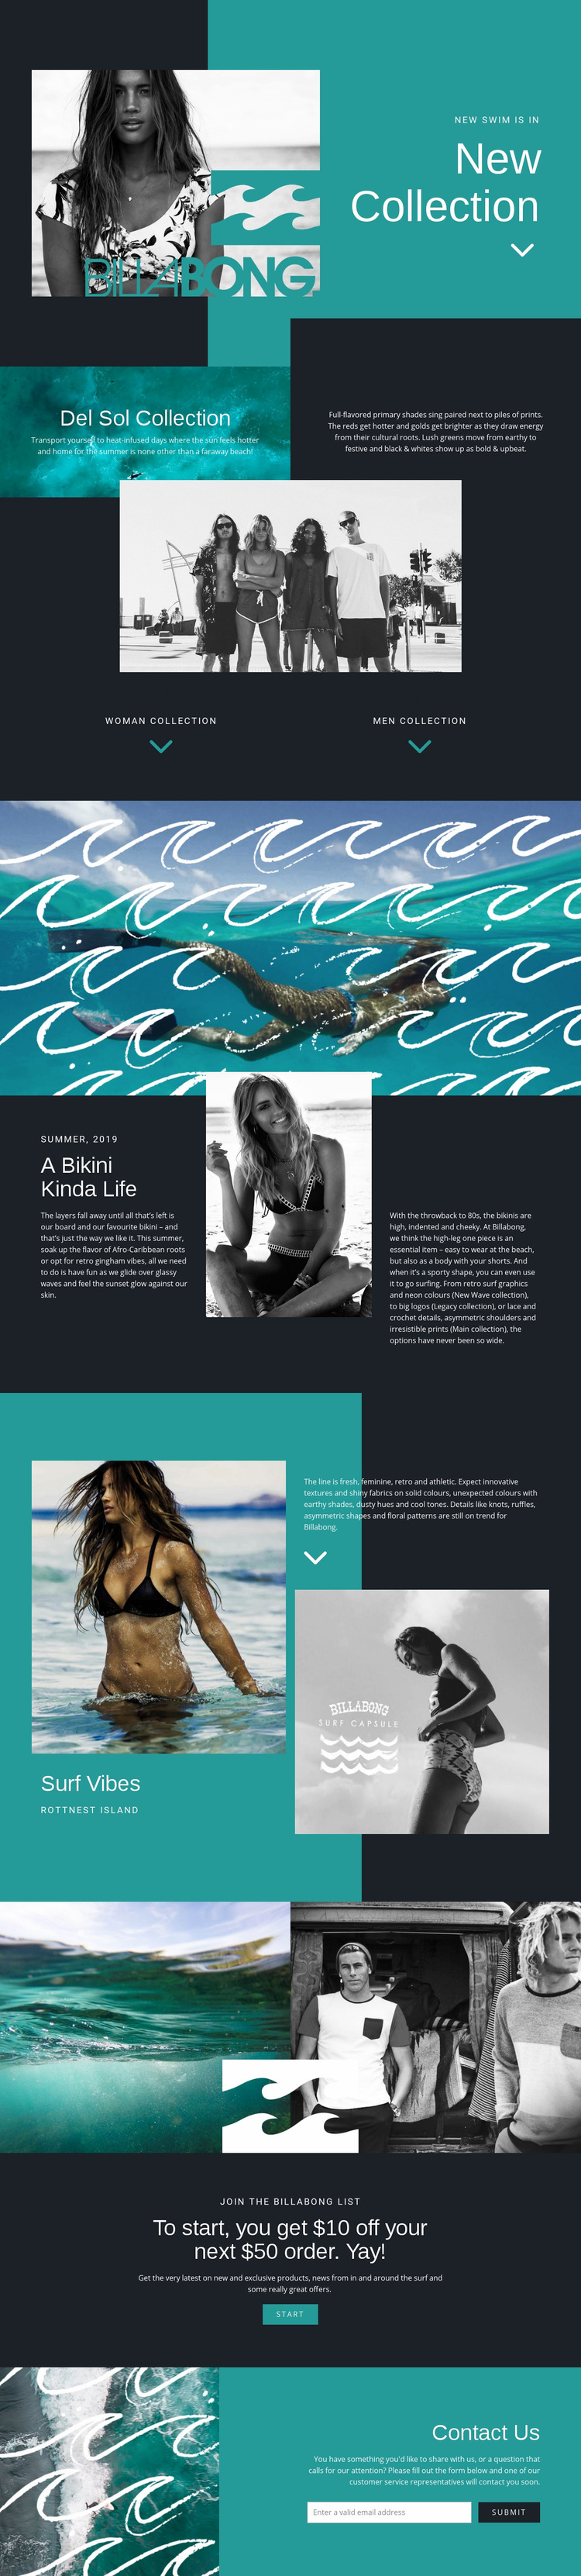 Billabong Web Page Design